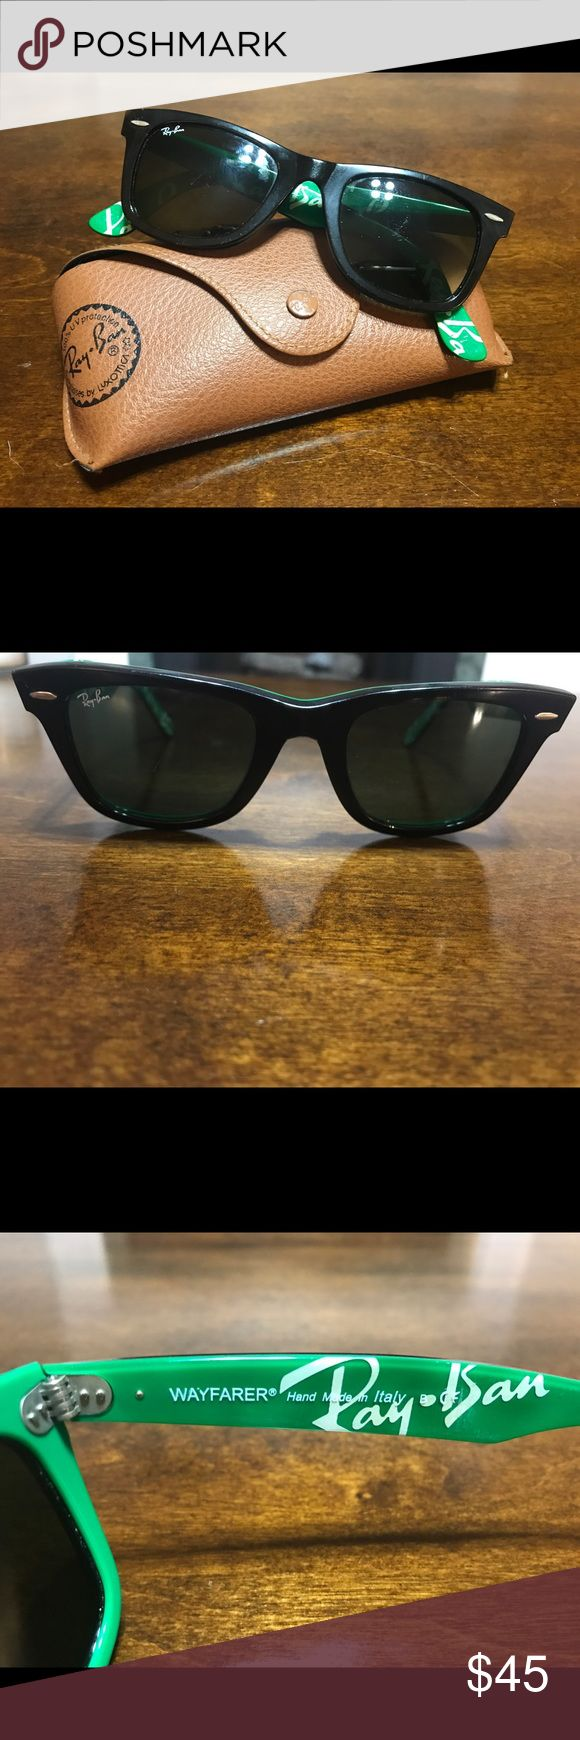 Authentic Ray-Ban wayfarers Authentic Ray-Ban wayfarers- black & green- some minor wear on the frames & scratches on lenses but doesn't interfere with vision- style # is pictured Ray-Ban Accessories Sunglasses